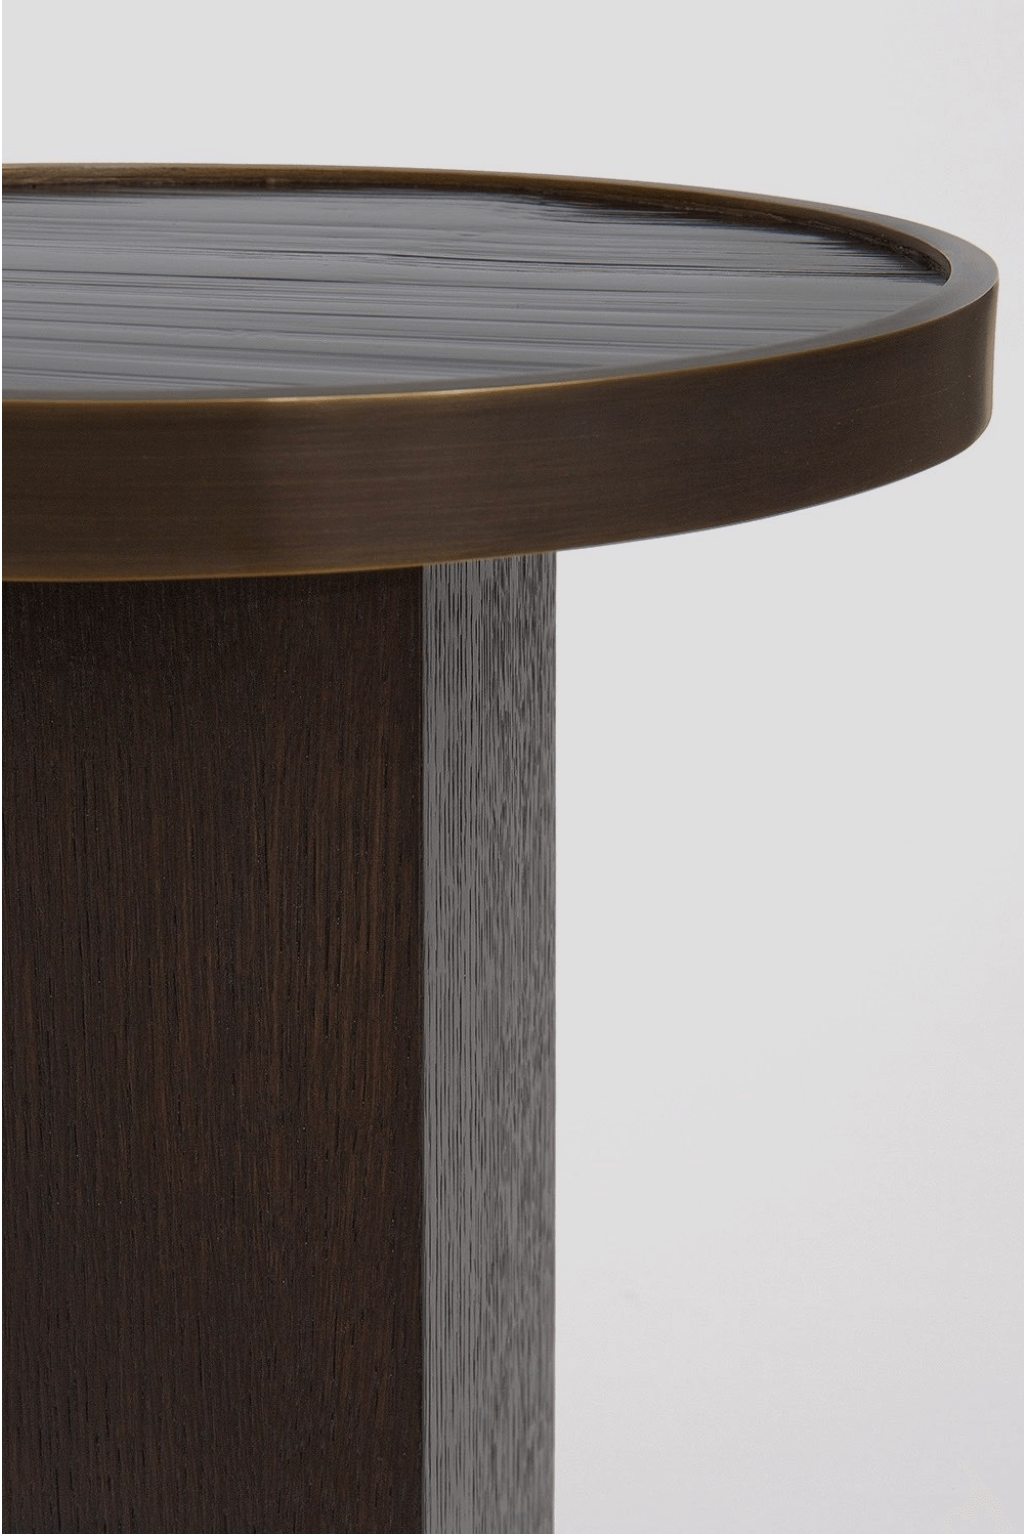 Aguirre+Design+-+Moka+Side+Table+-+Bamboo,+Brass+and+Oak-1.png